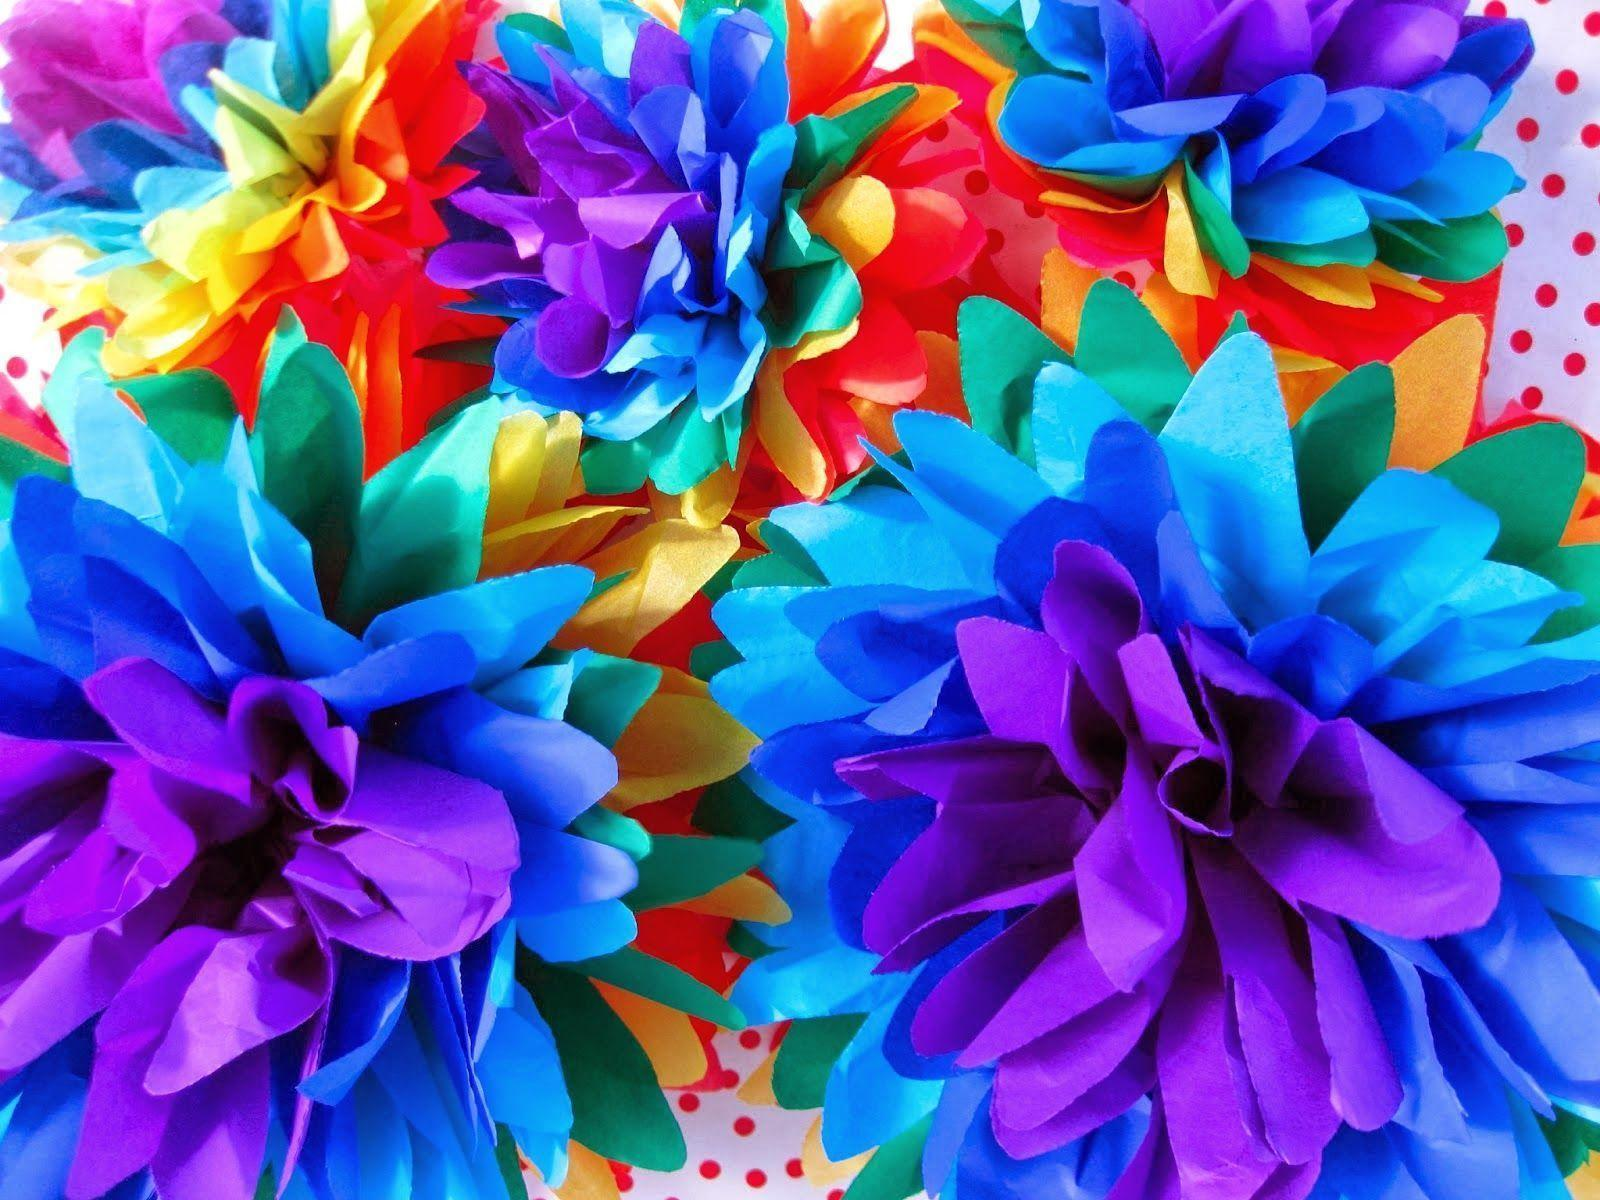 rainbow flowers wallpaper paintings - photo #2